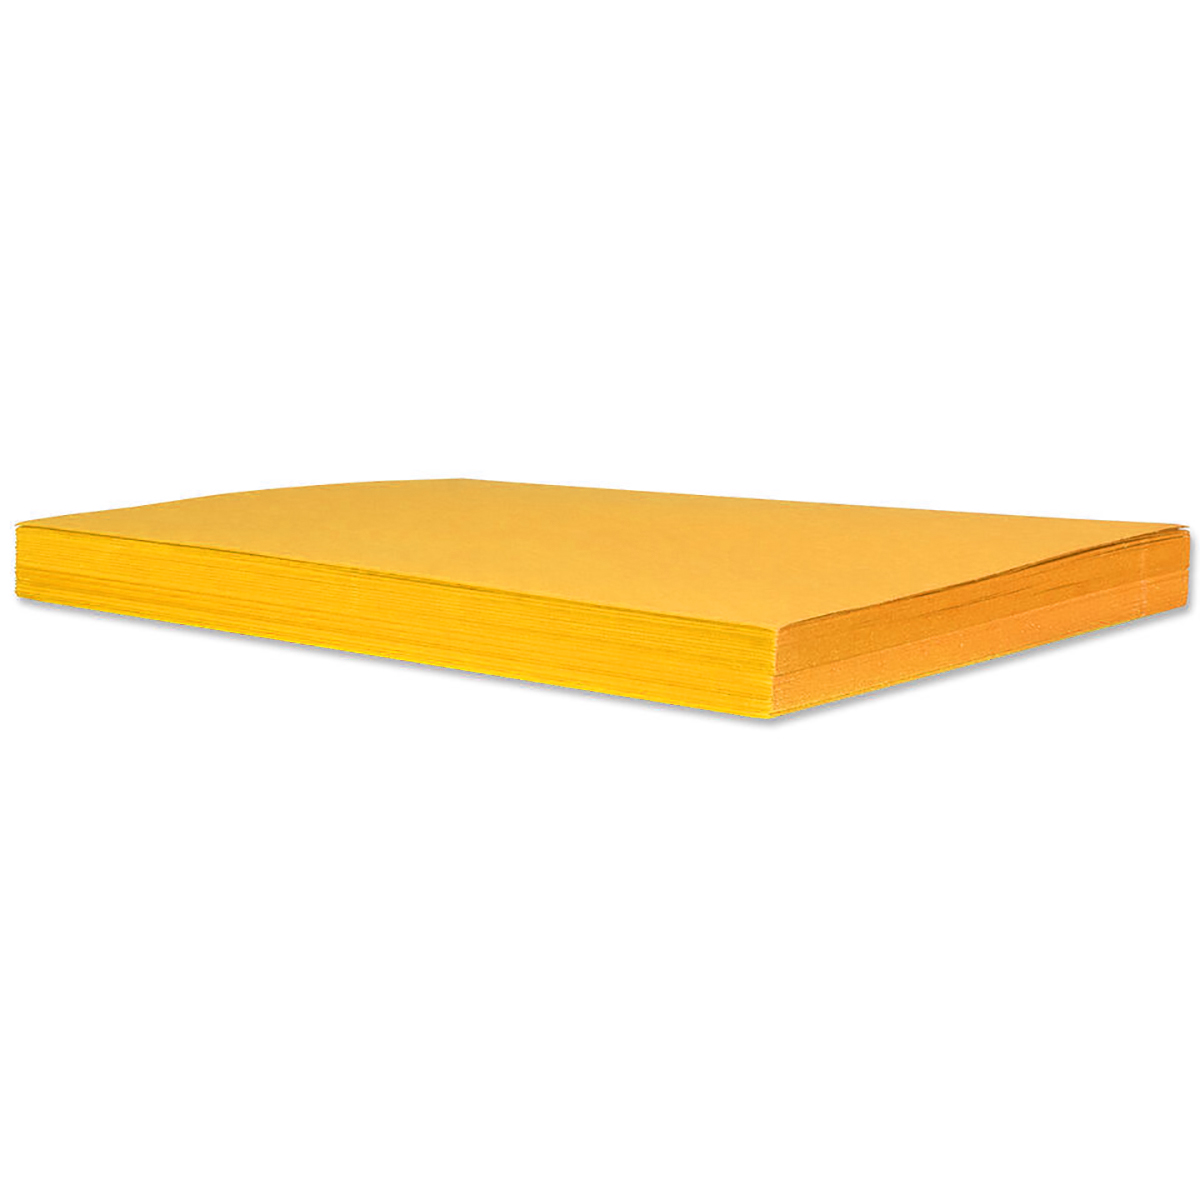 Construction Paper: Yellow 50 Sheets